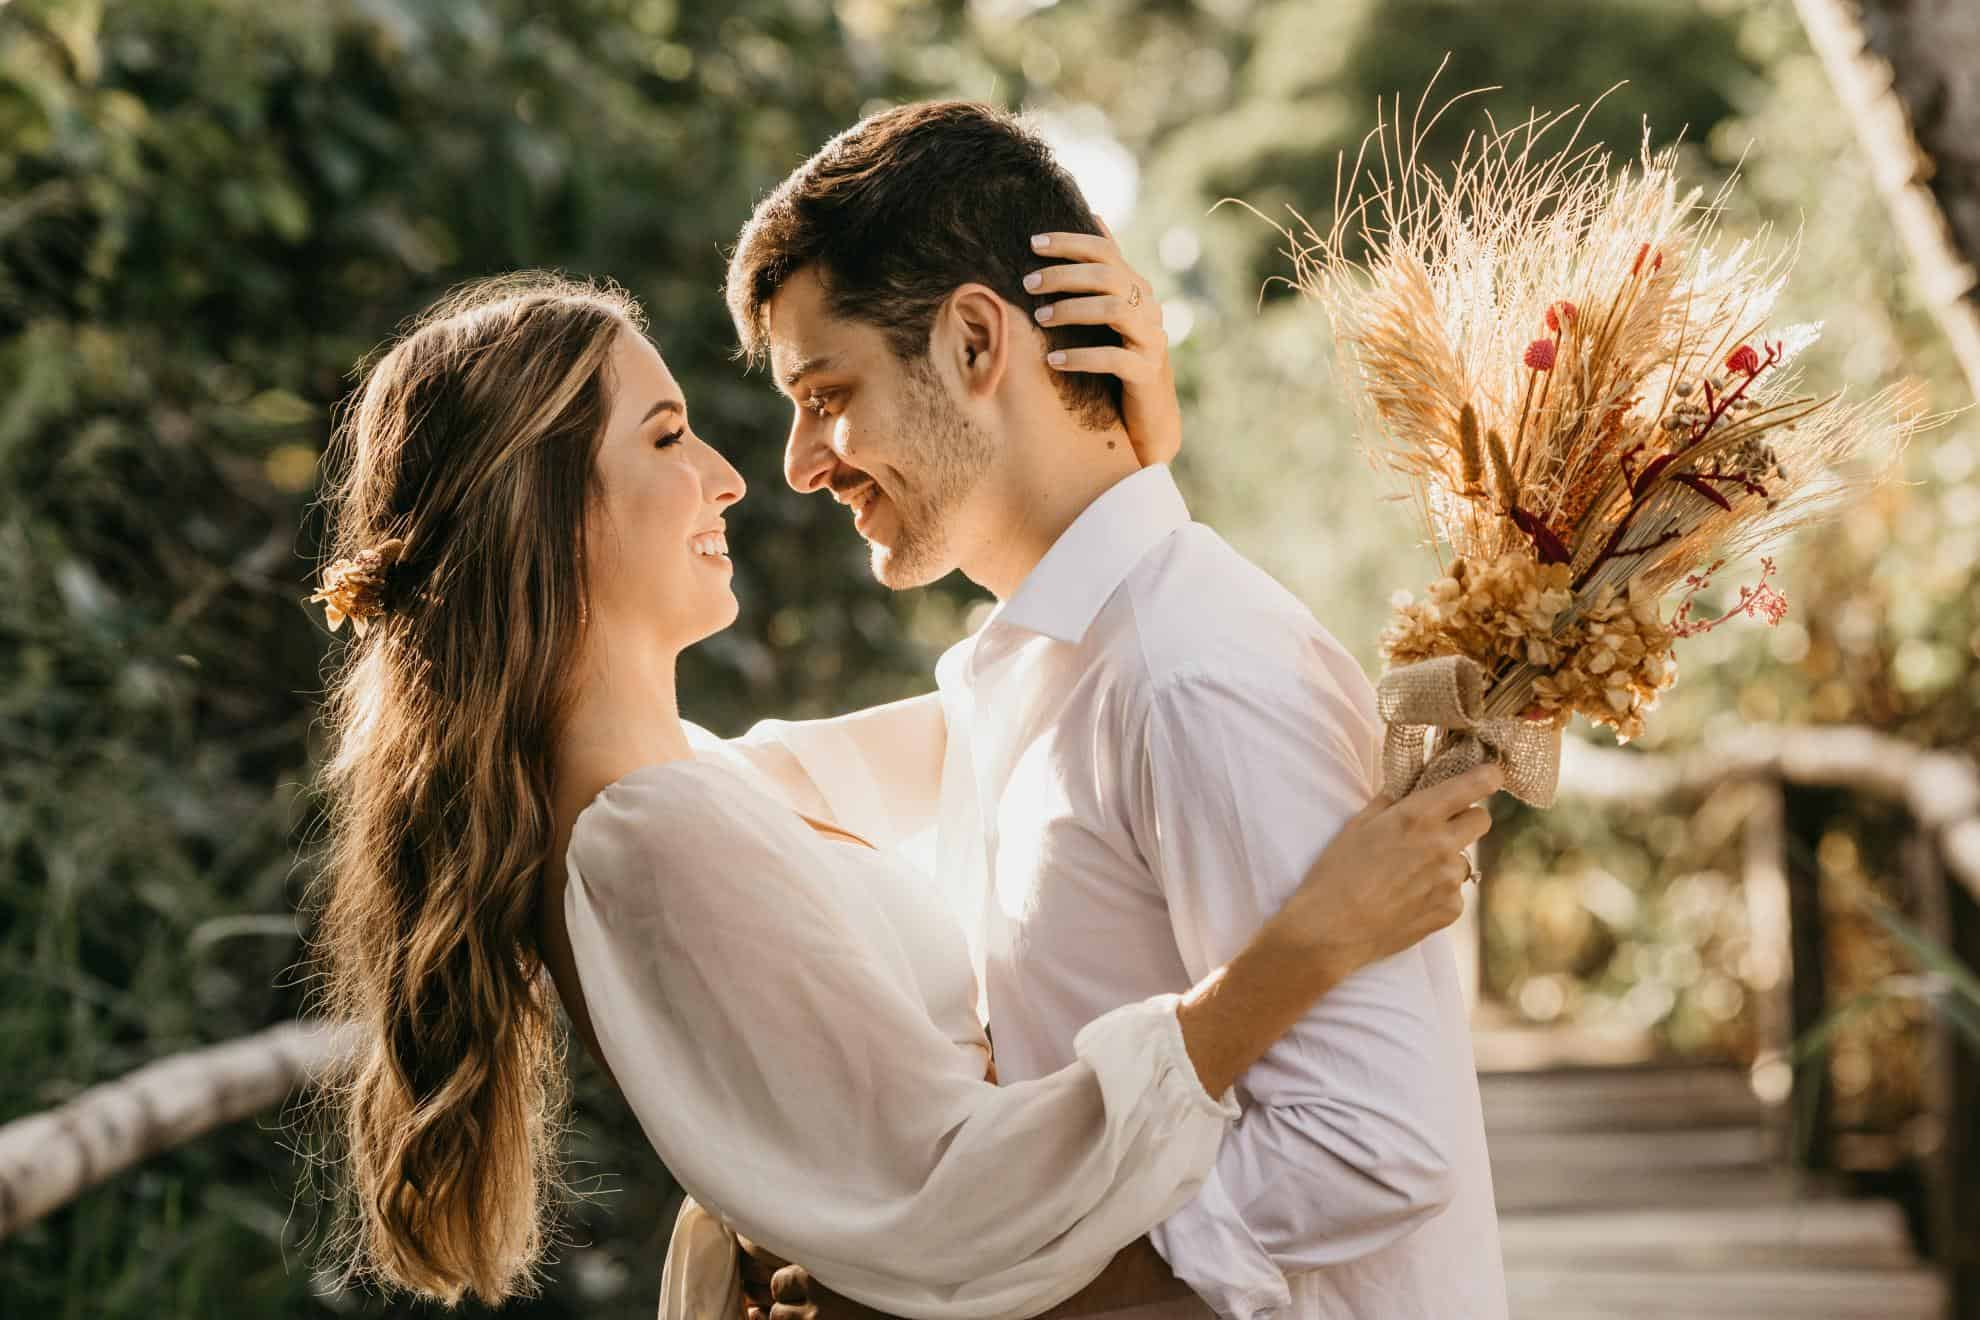 6 Things to Do About Pre-wedding Anxiety